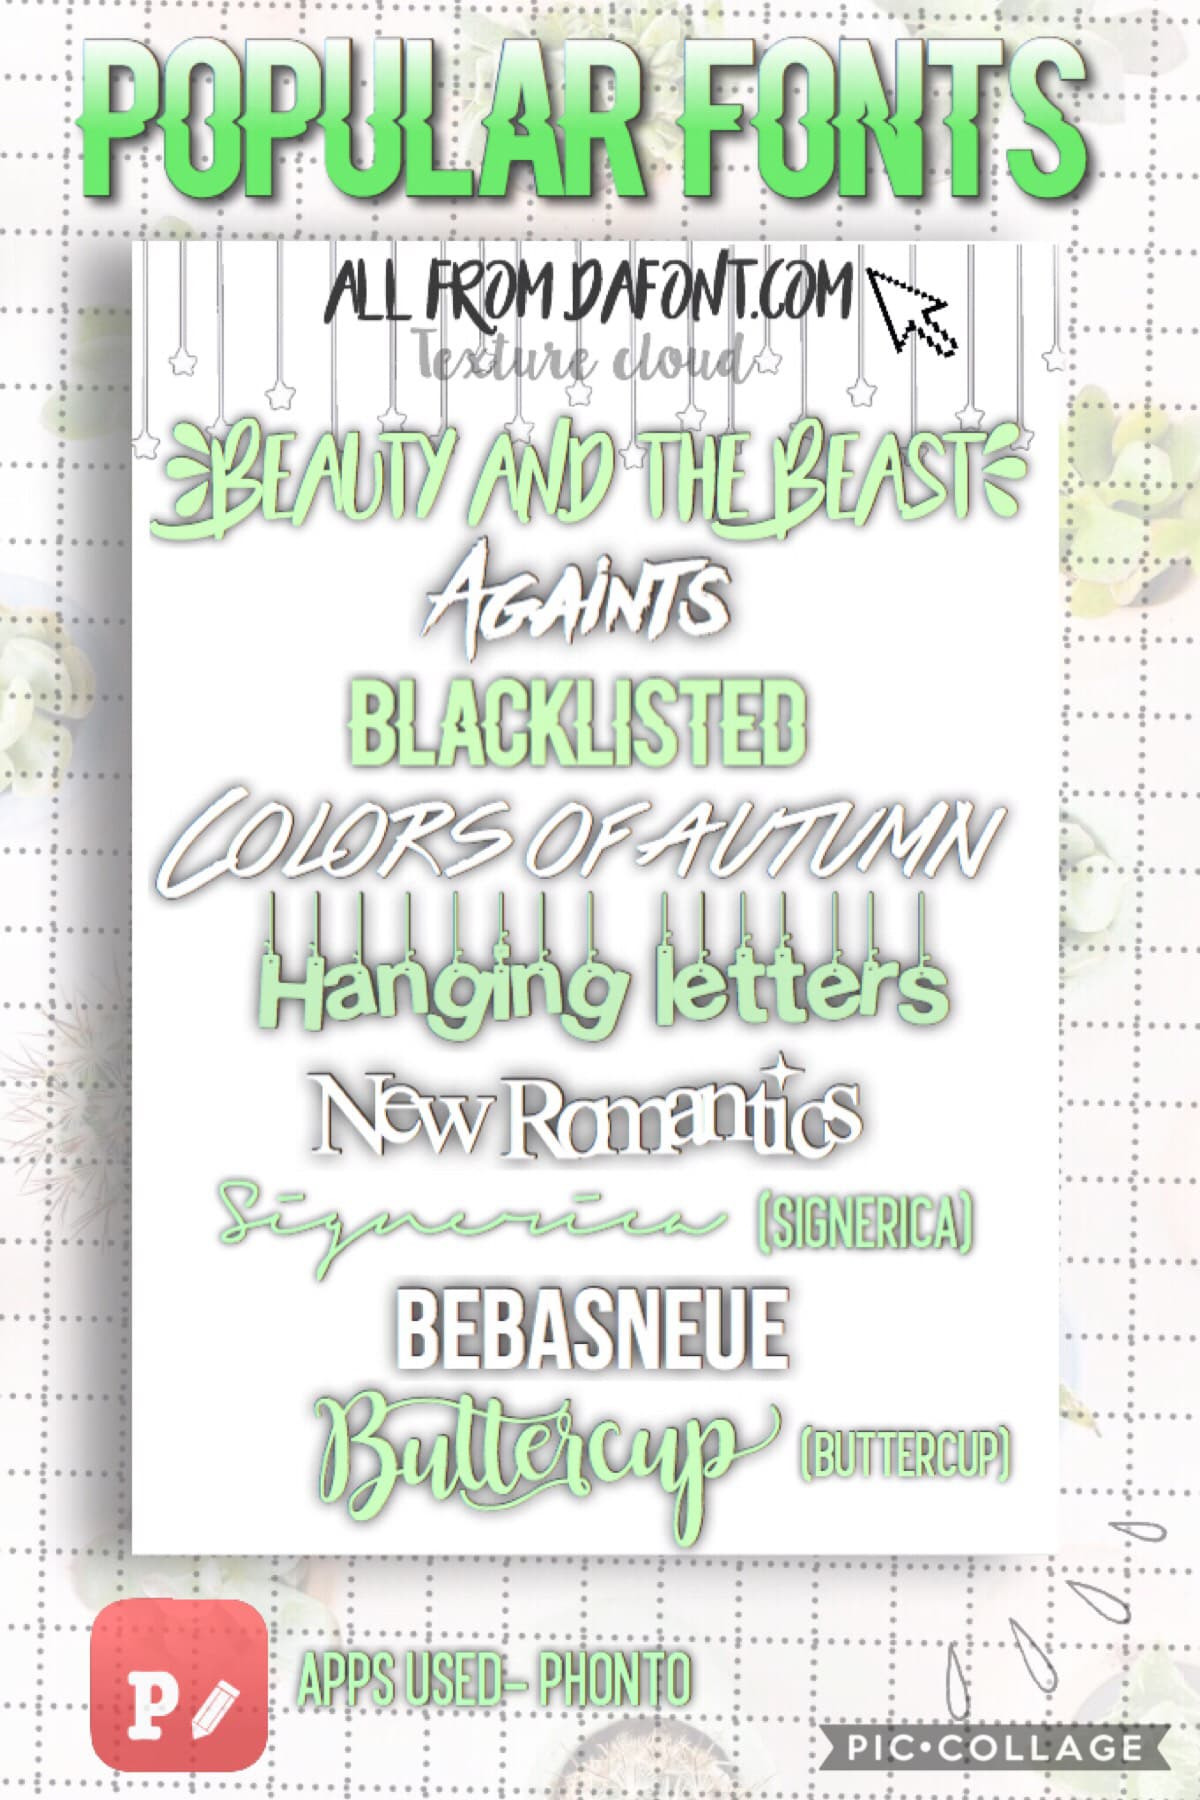 🍃Popular Fonts🍃 If you don't know how to download font, look in the comments for a detailed description.   Links to all also in comments 💕 enjoy!